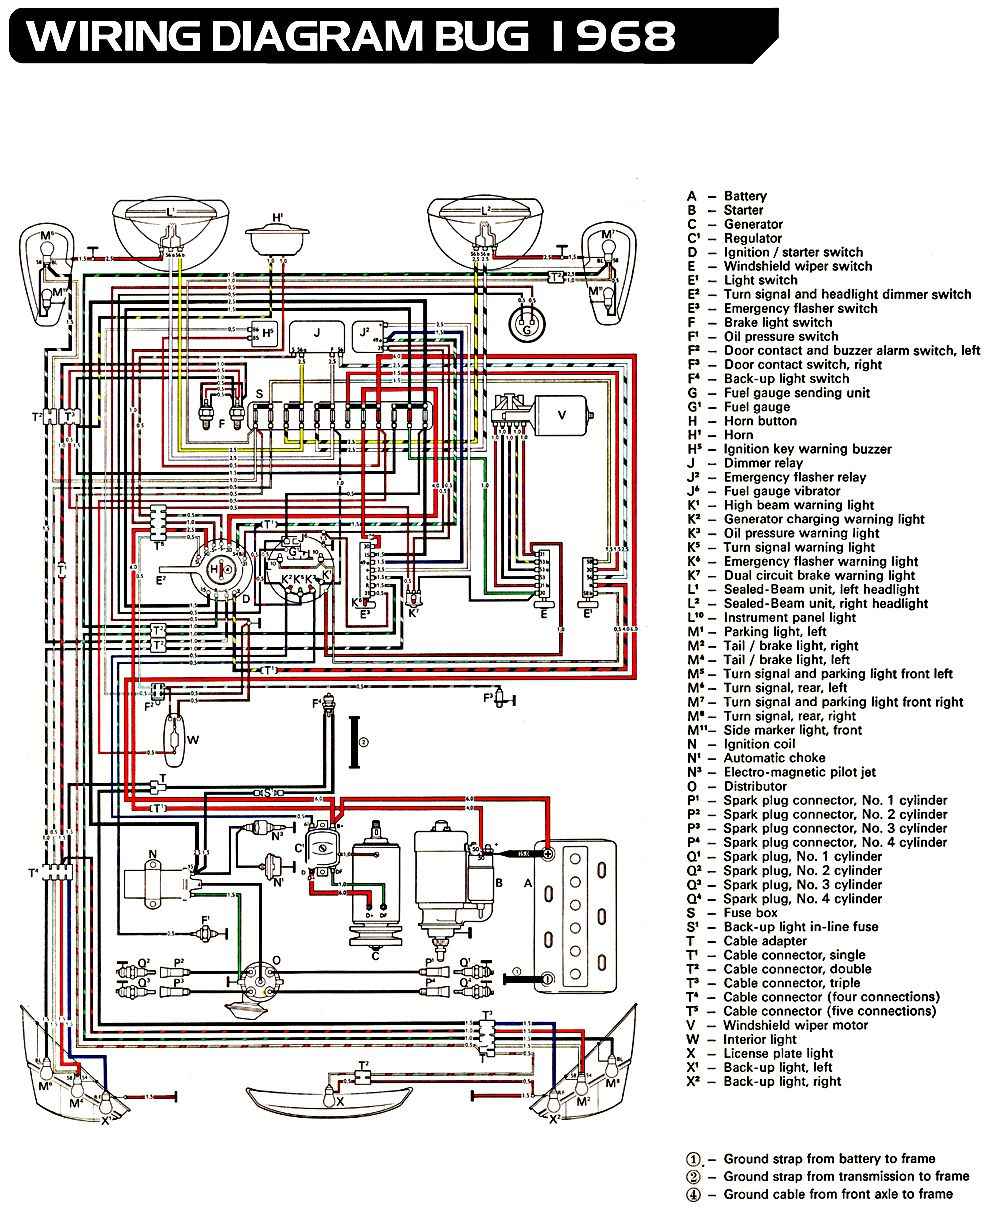 vw bug ignition wiring diagram 73 vw wiring diagram free 1973 vw bug wiring schematic vw bug wiring schematic